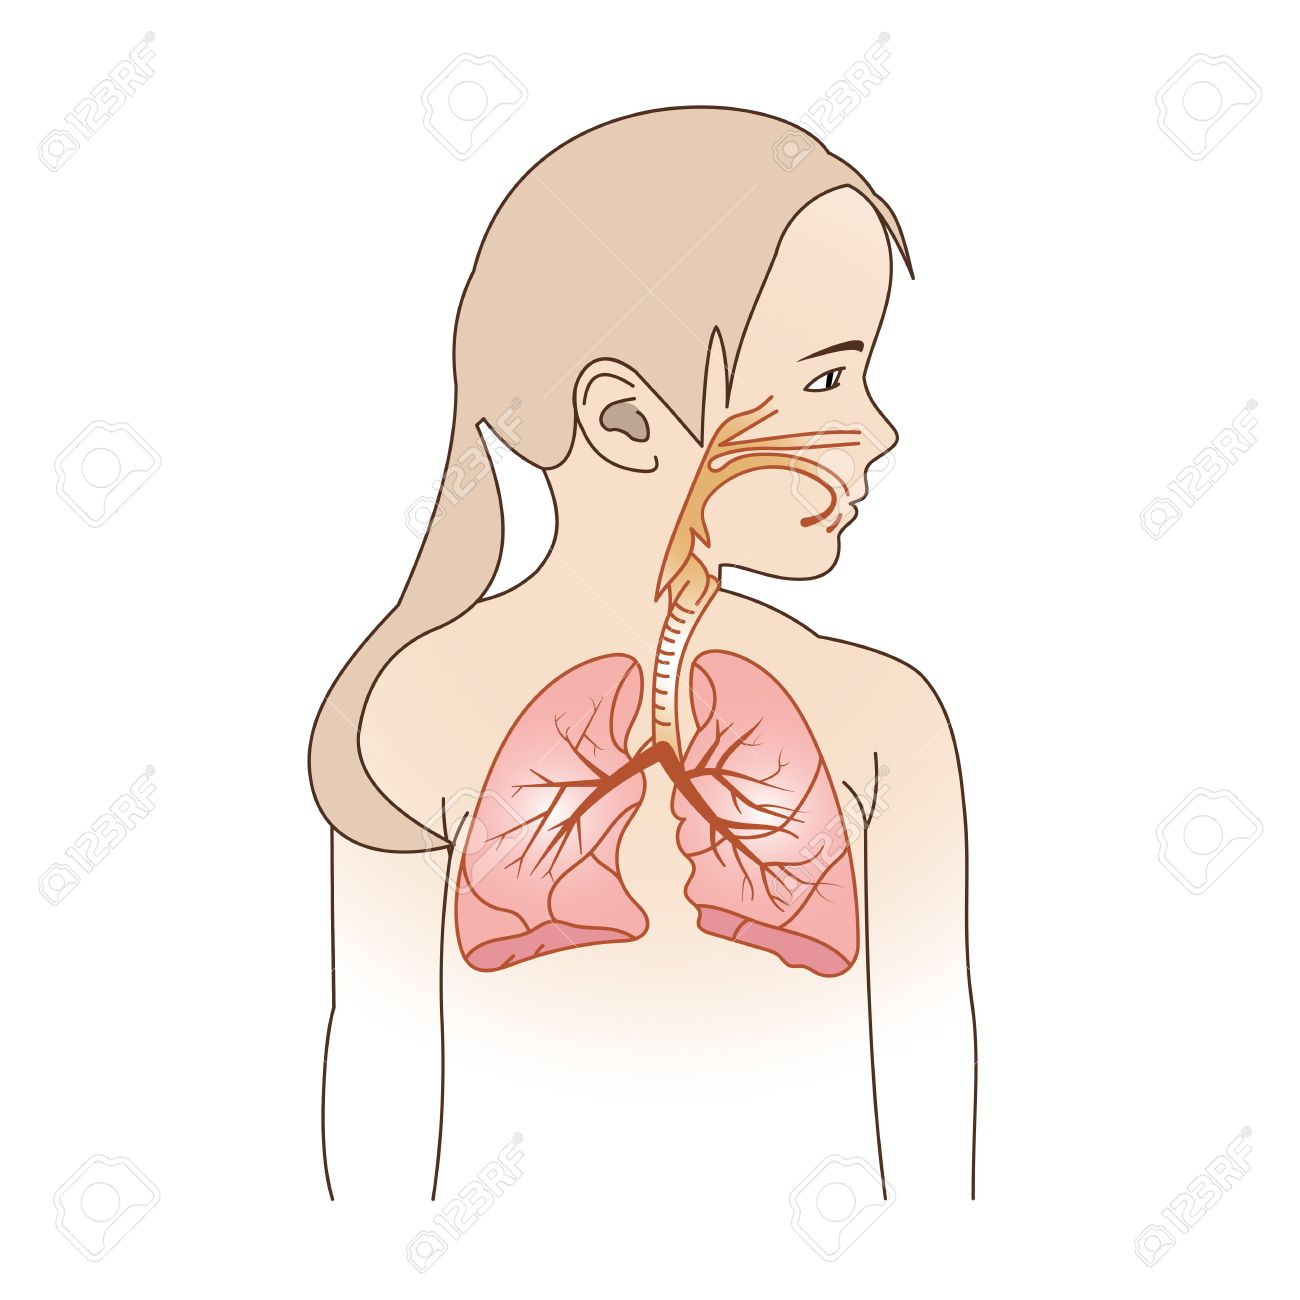 Vector Illustration of a Child Respiratory System Organs - 48552487